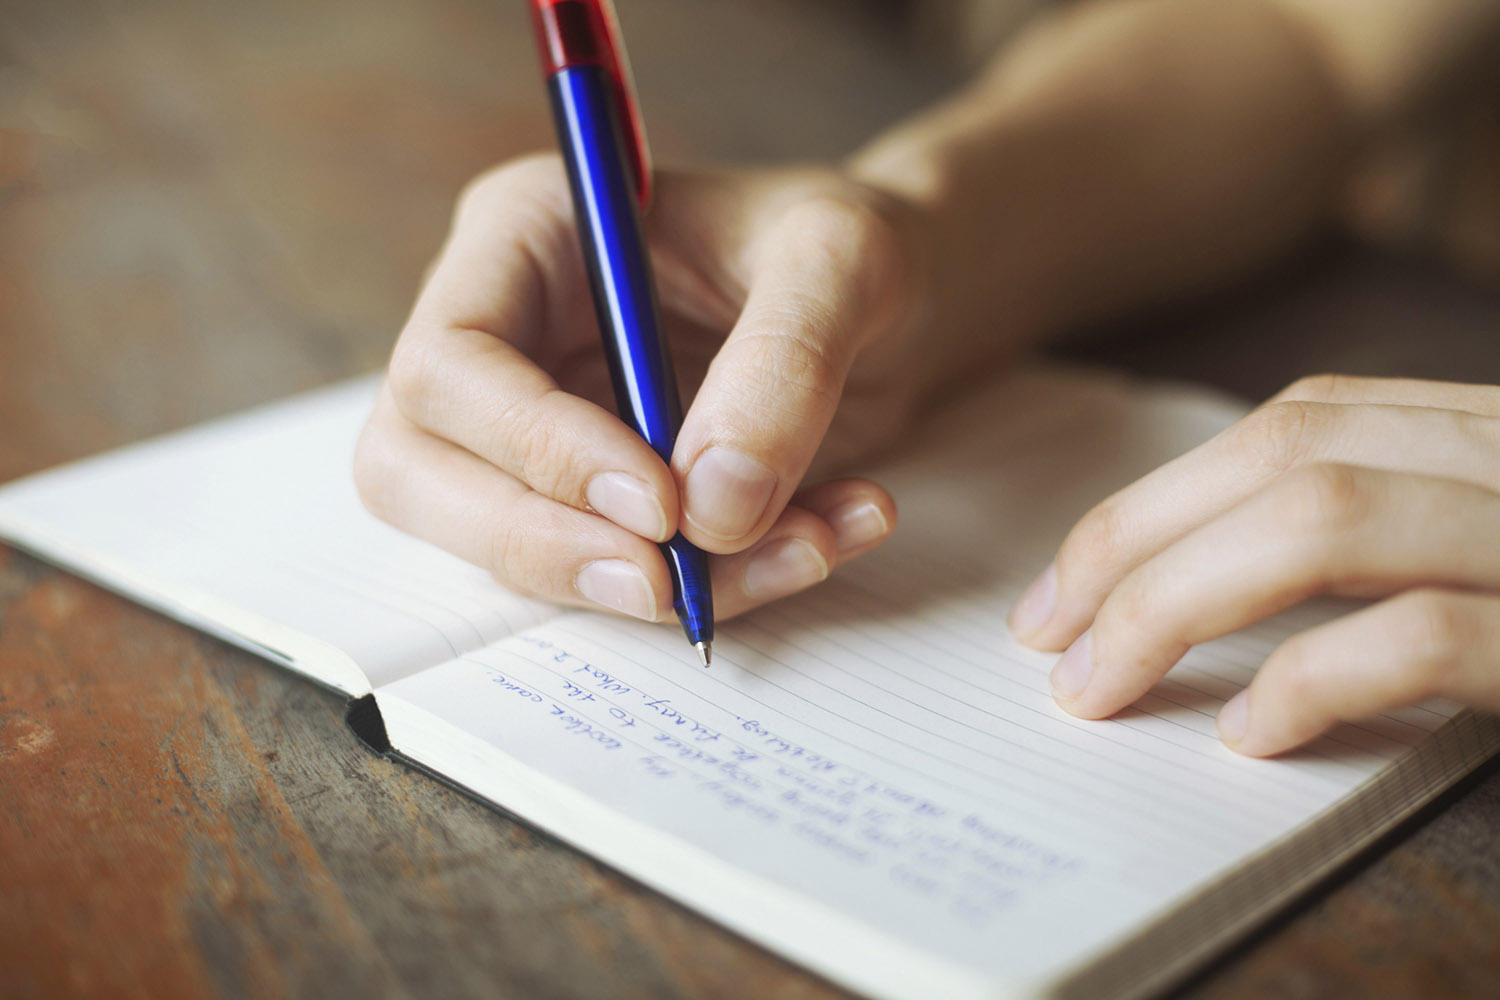 We will provide Content writing services,copyscape articles, SEO optimized